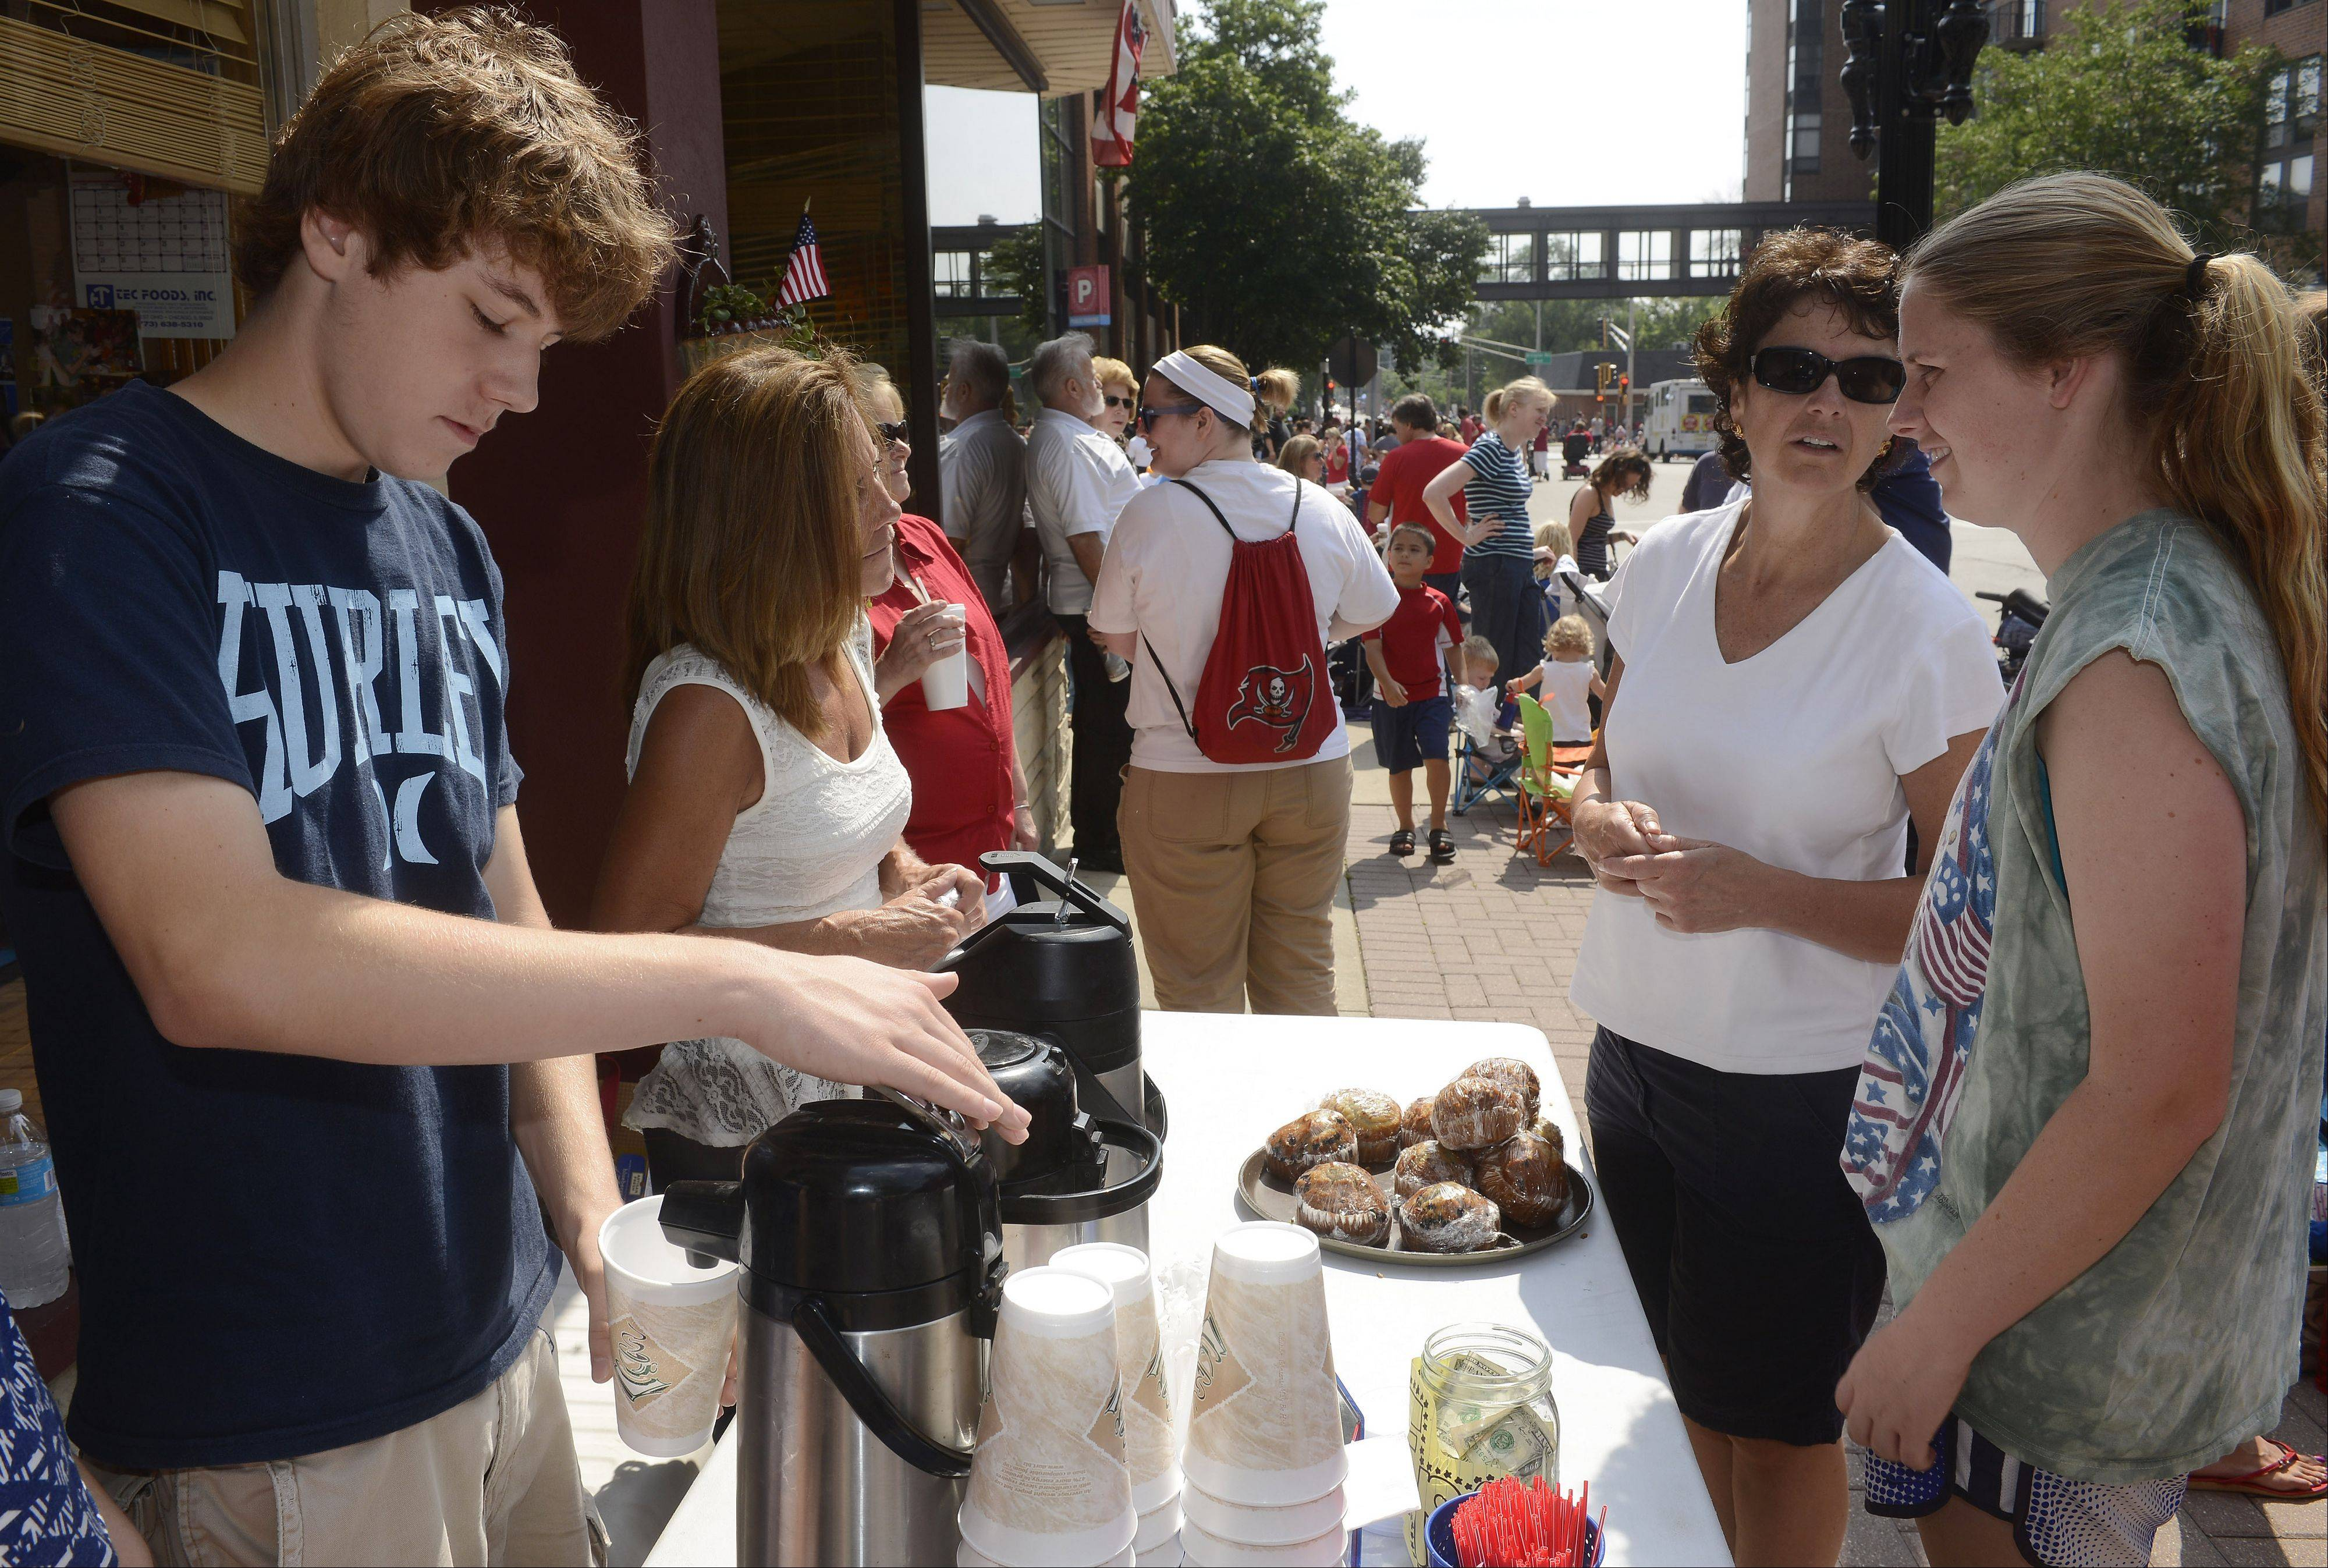 Logan Boven of Arlington Heights pours a cup of coffee as he and his mom, Vicki, serve Anna Walsh, second from right, and her daughter Colleen Clark, both of Arlington Heights, outside the Uptown Cafe prior to the Arlington Heights Fourth of July parade Thursday.